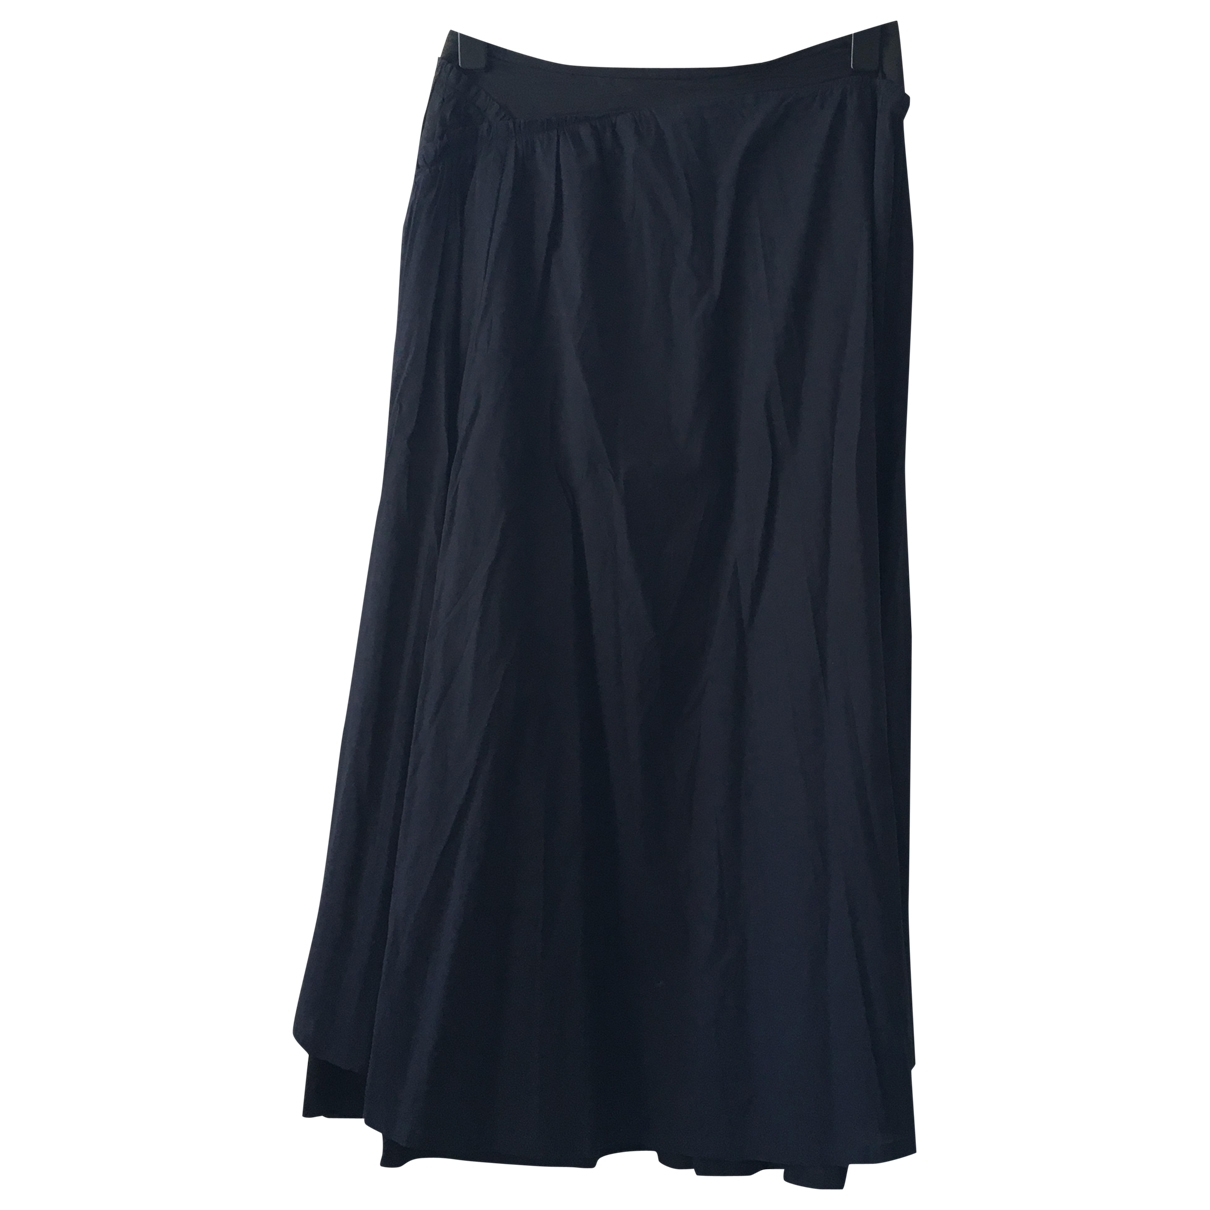 Issey Miyake \N Blue Cotton skirt for Women 4 0-5